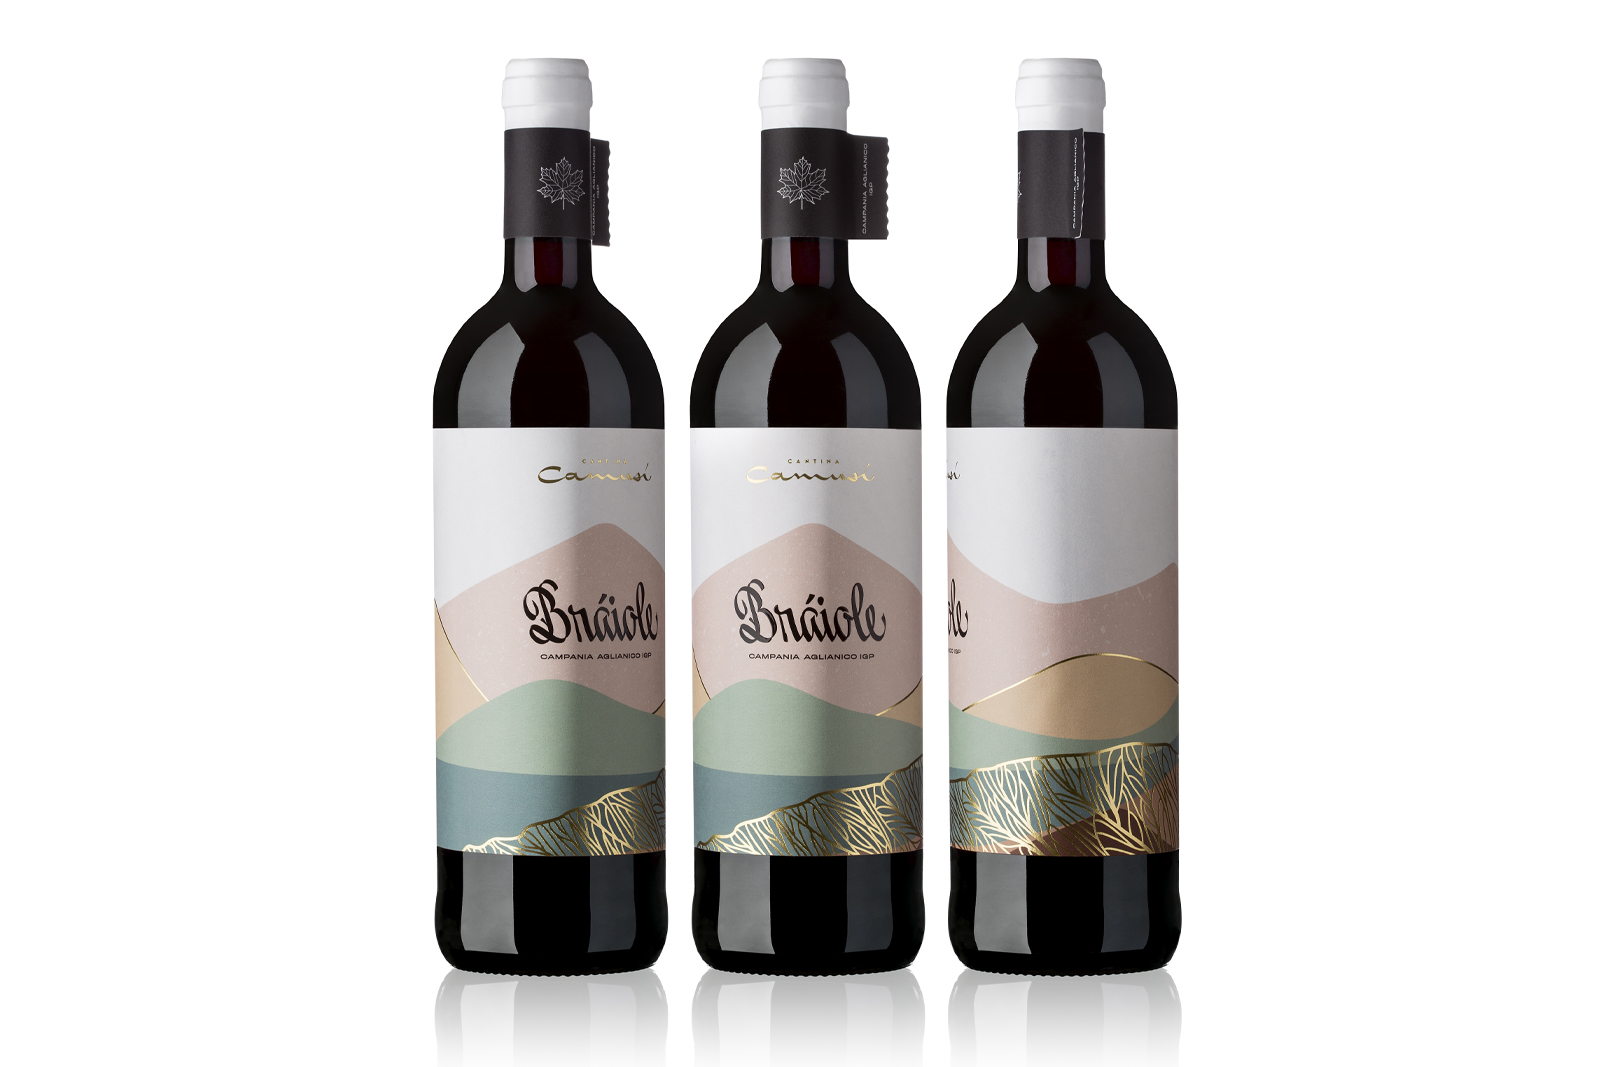 Contrada Braiole Red Wine Naming – Brand and Packaging Design by BasileADV